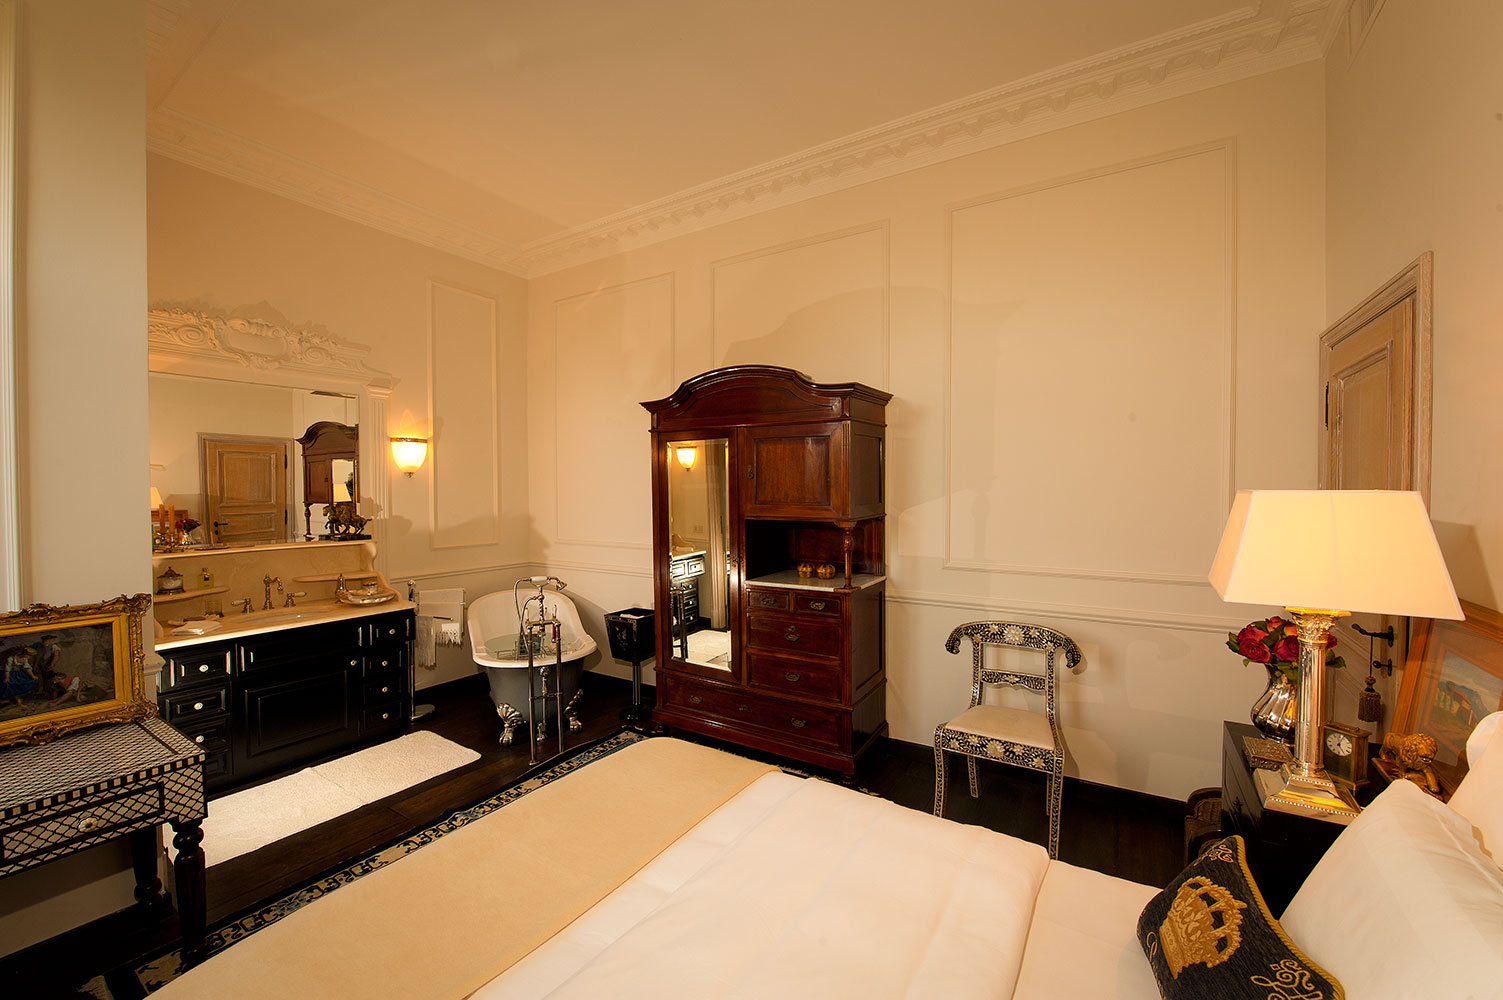 Parco del Principe - Rooms